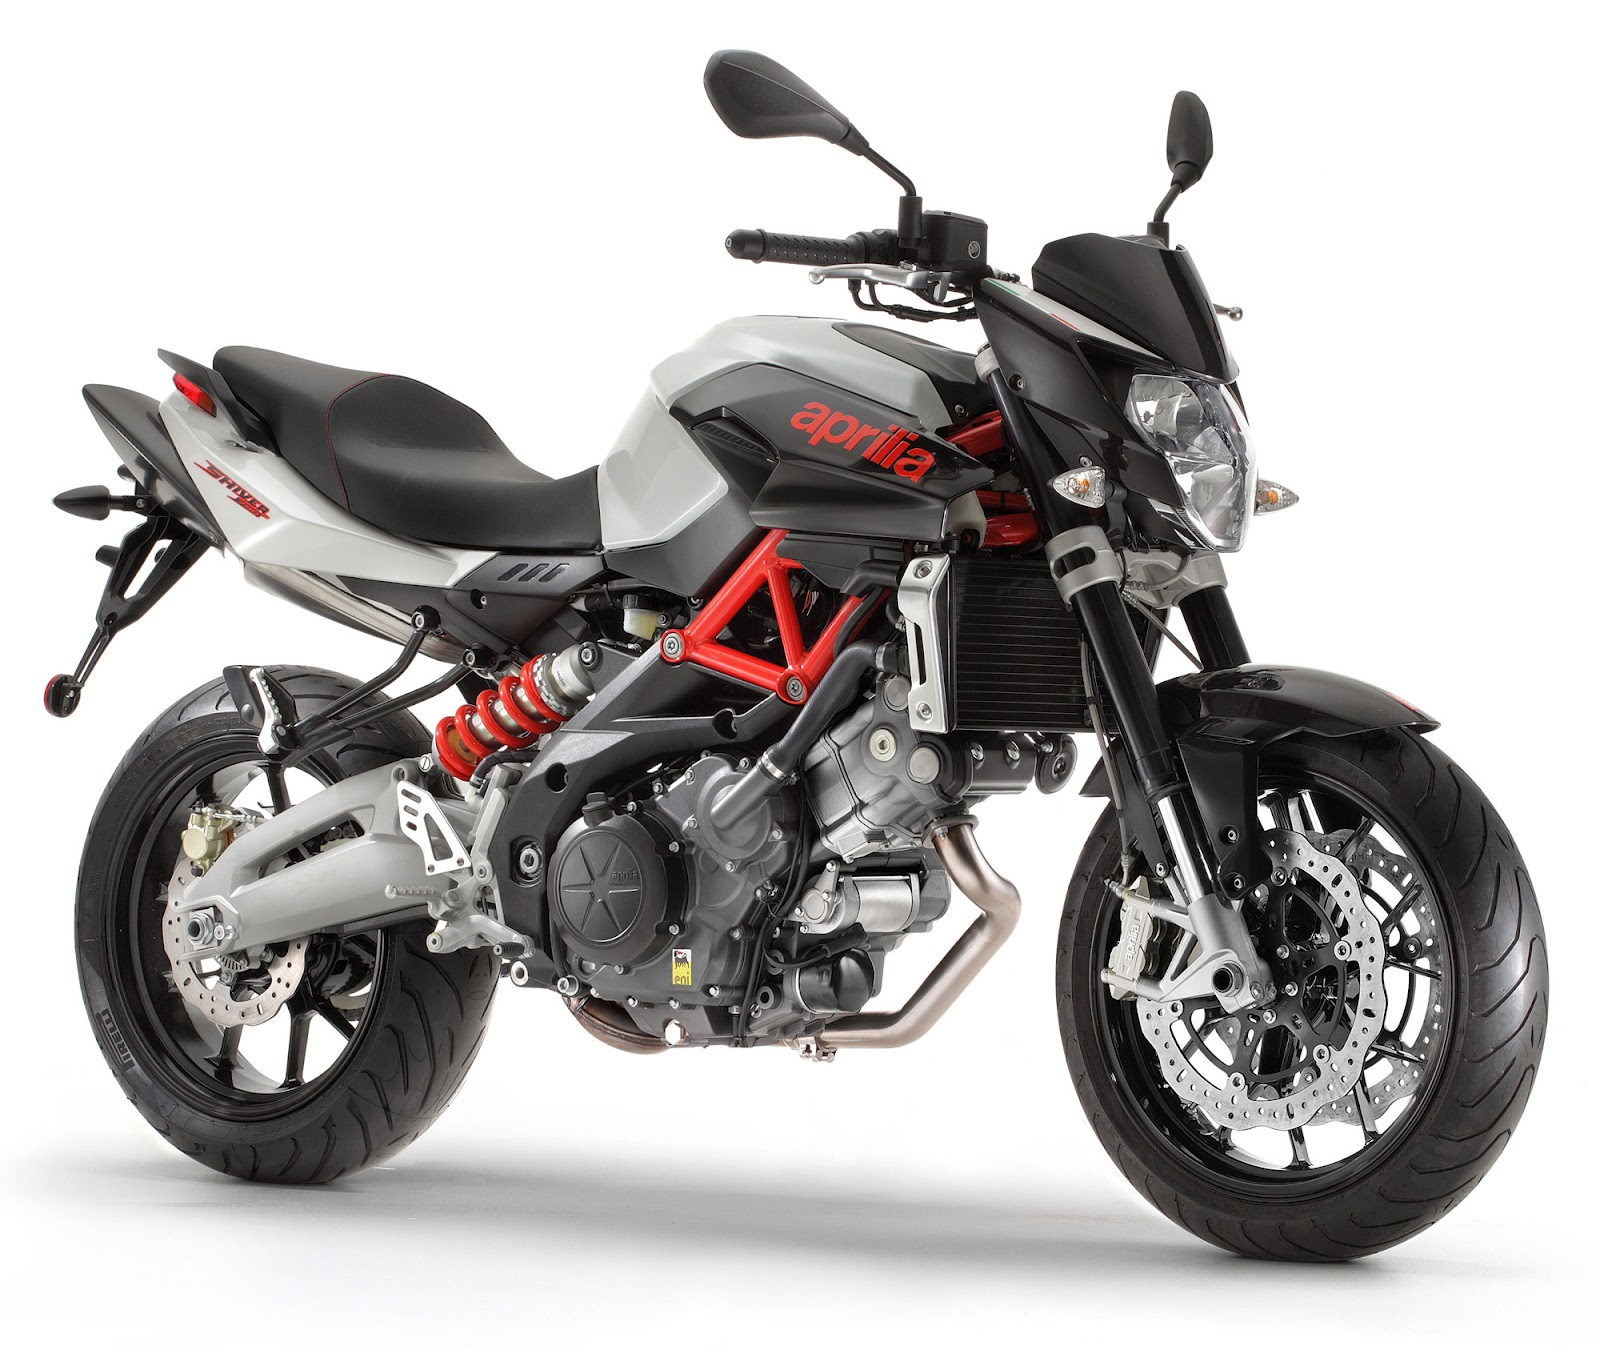 2012 aprilia shiver 750 review motorcycles specification. Black Bedroom Furniture Sets. Home Design Ideas